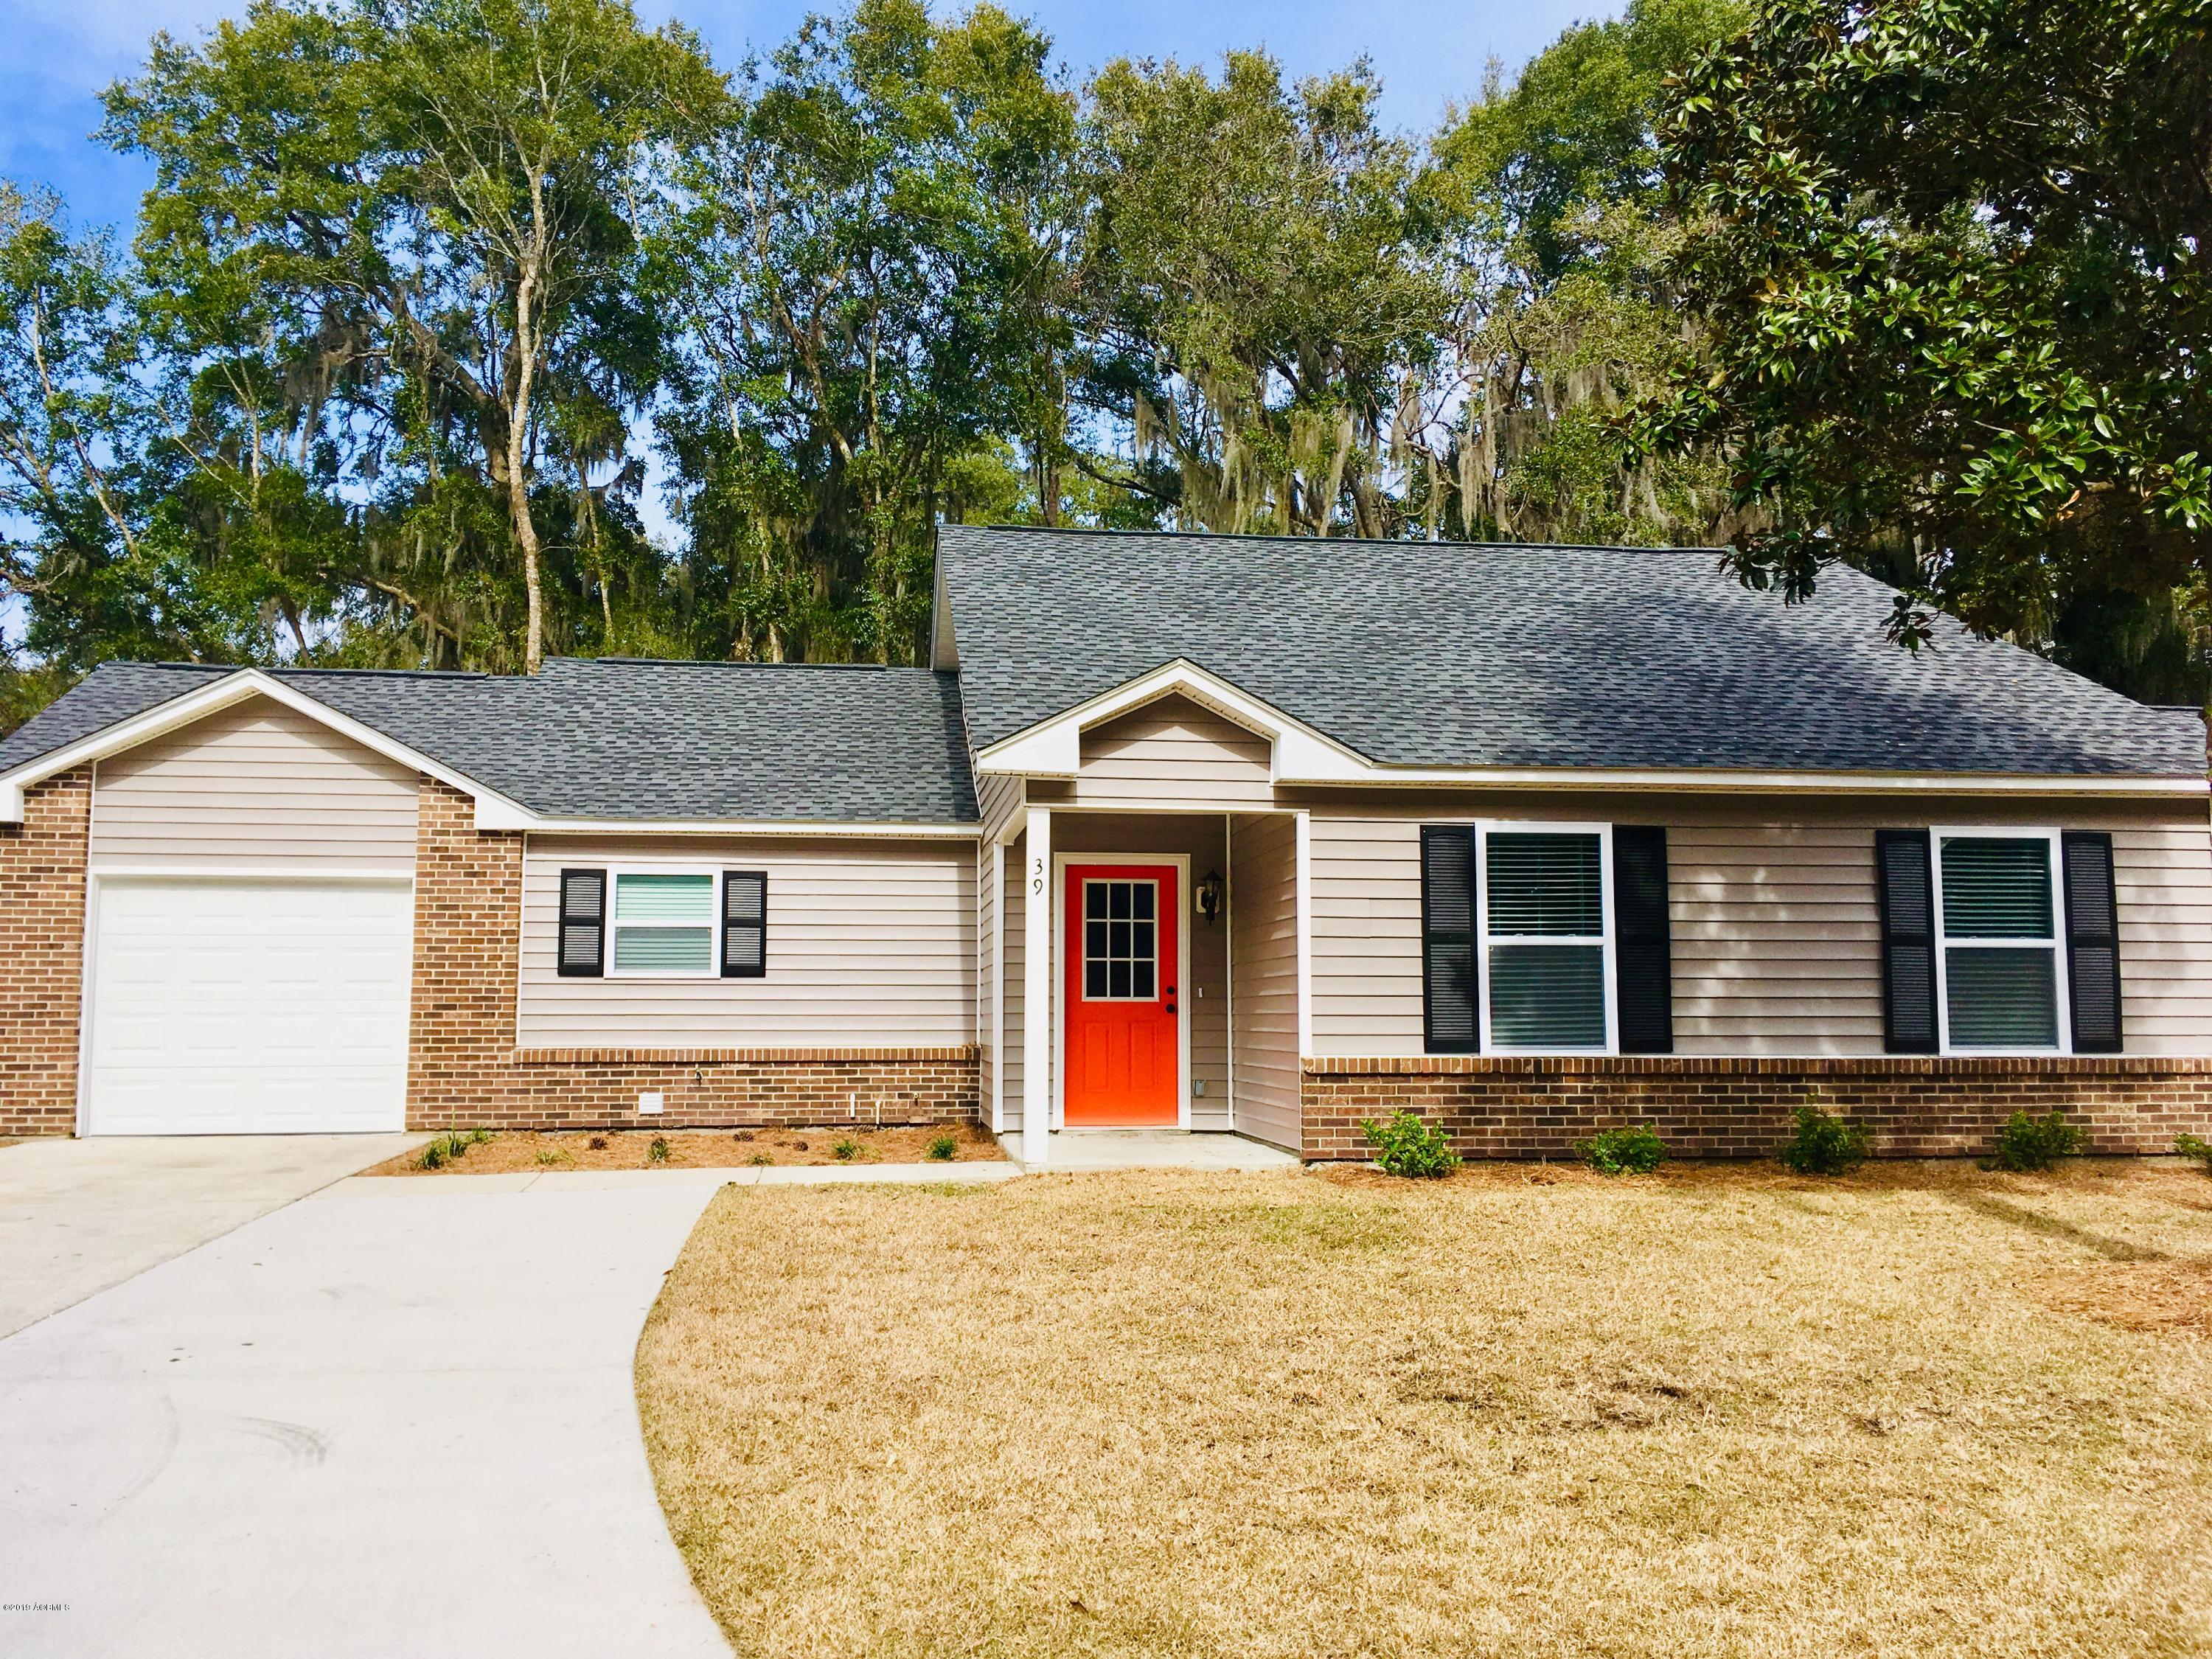 Photo of 39 Brindlewood Drive, Beaufort, SC 29907